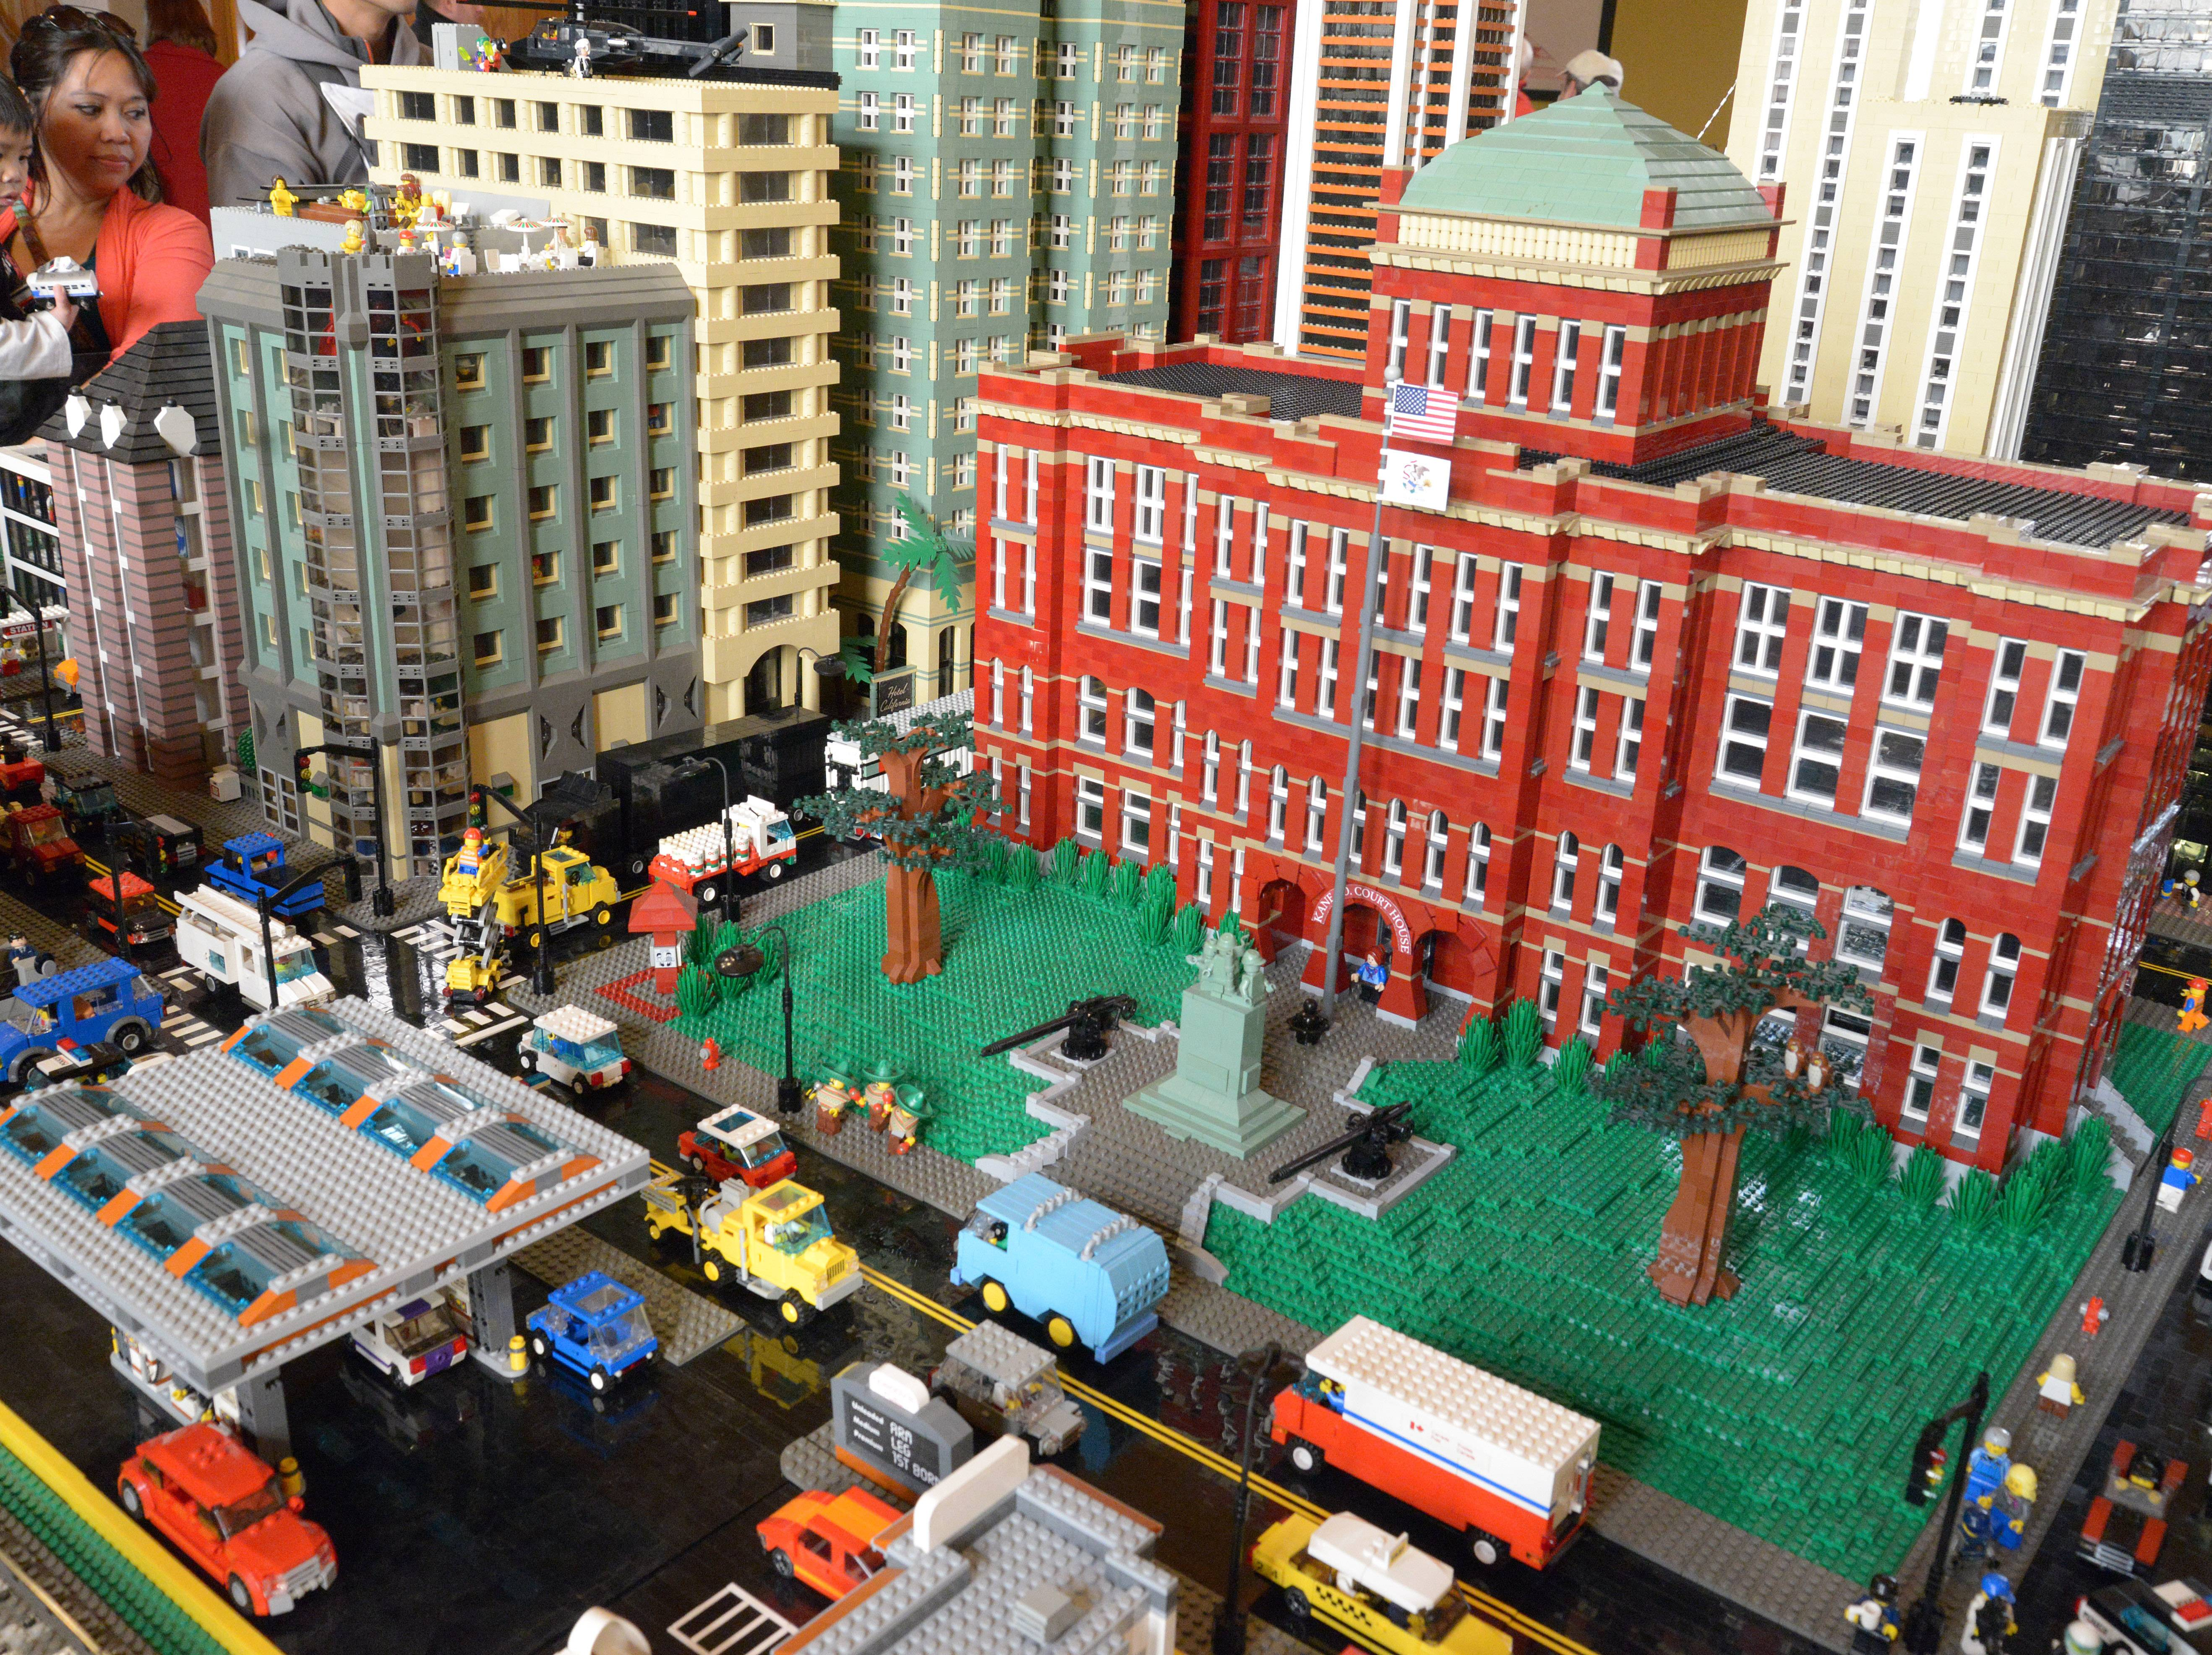 Members of the Northern Illinois Lego Train Club create large, detailed displays using only Lego parts. The club's display visits the DuPage County Historical Museum in Wheaton Saturday and Sunday.